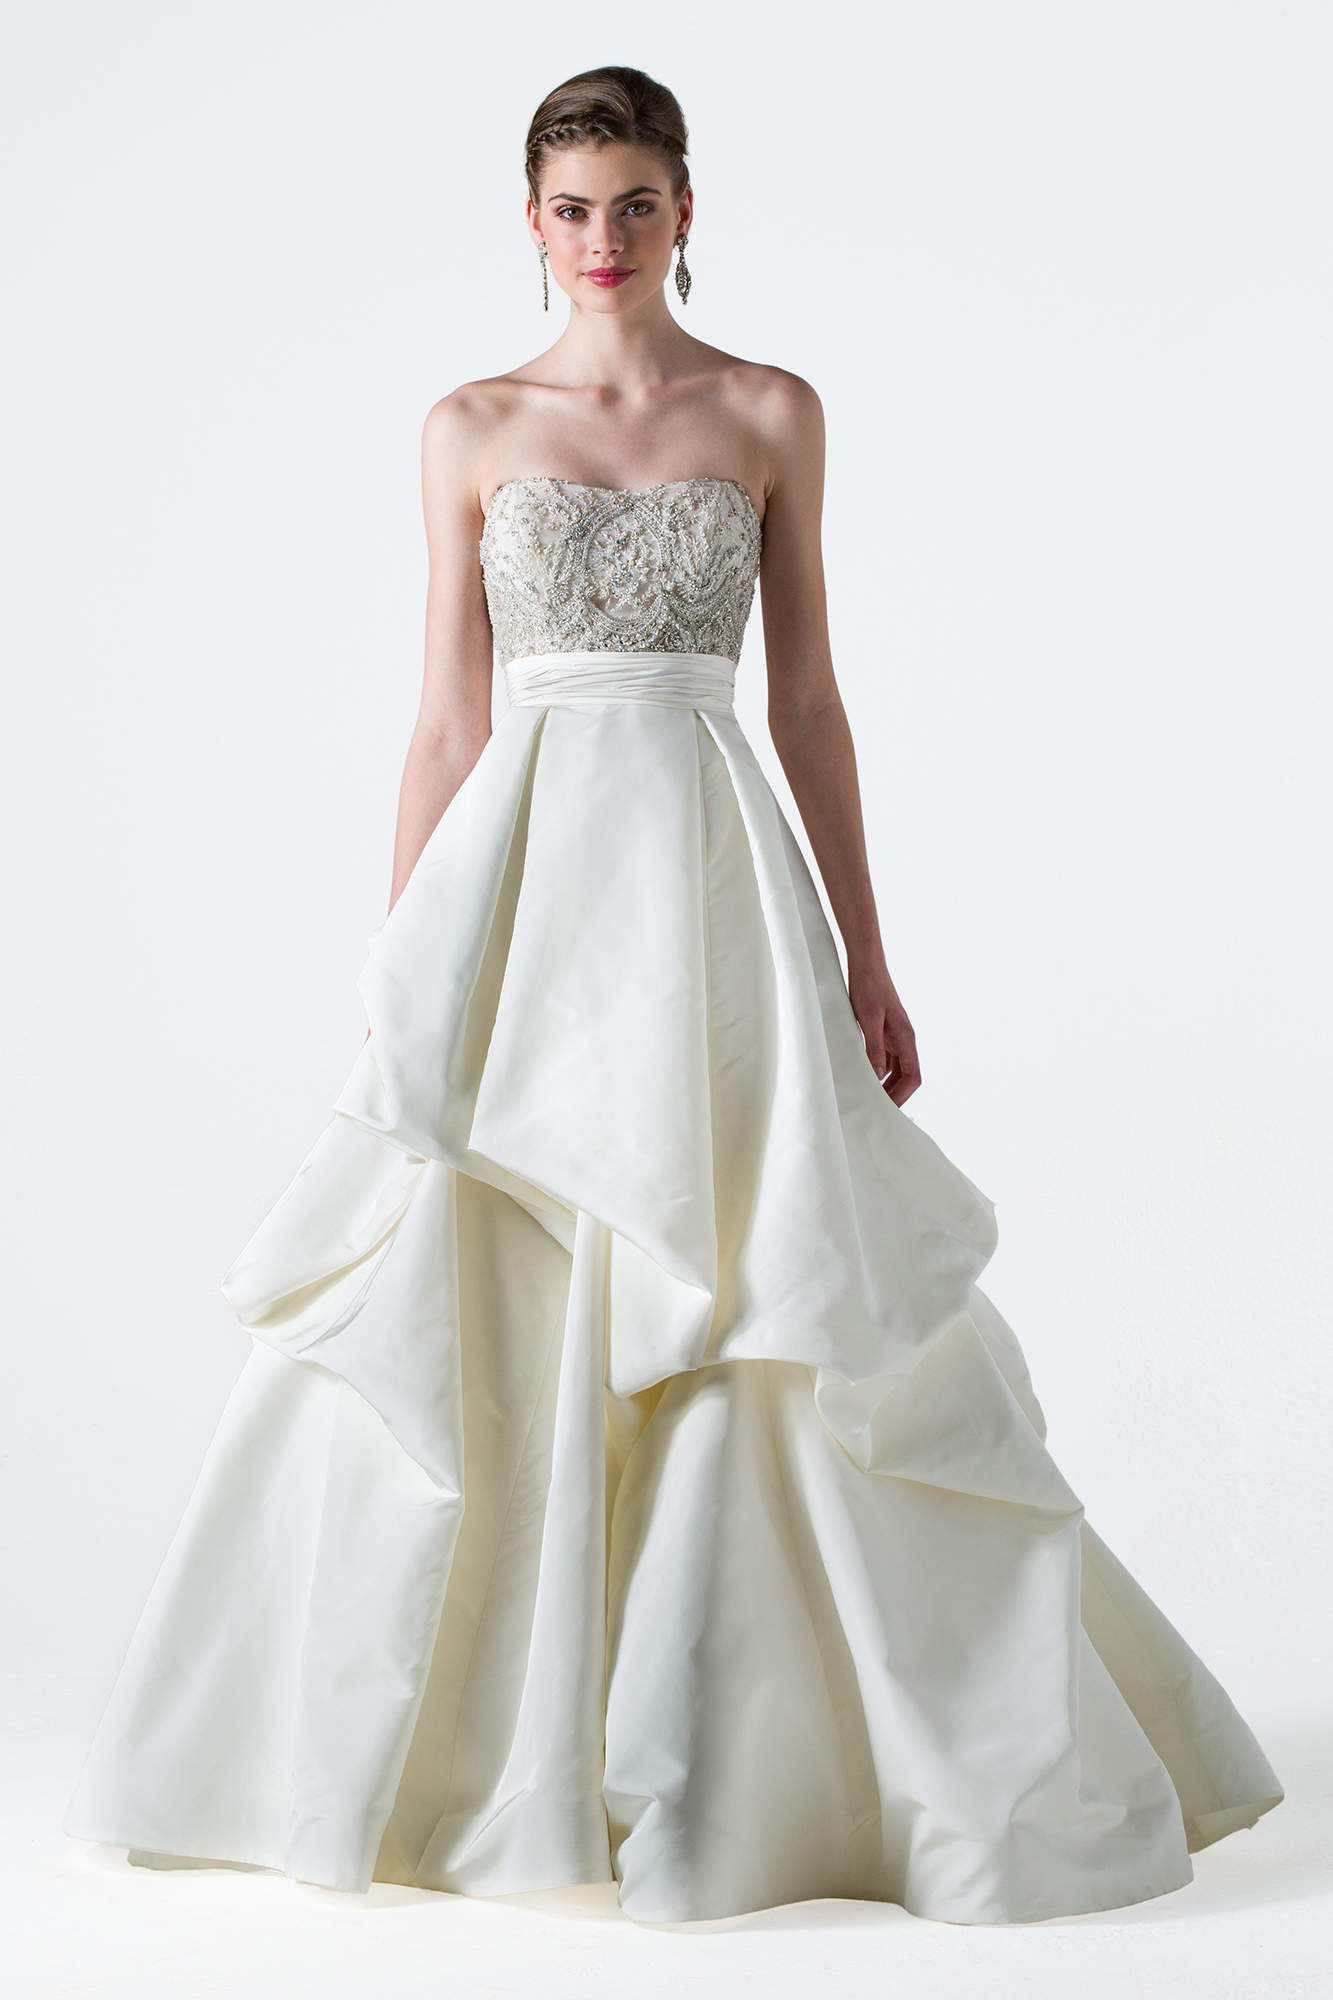 The 25 MostPinned Wedding Dresses Of 2015 HuffPost